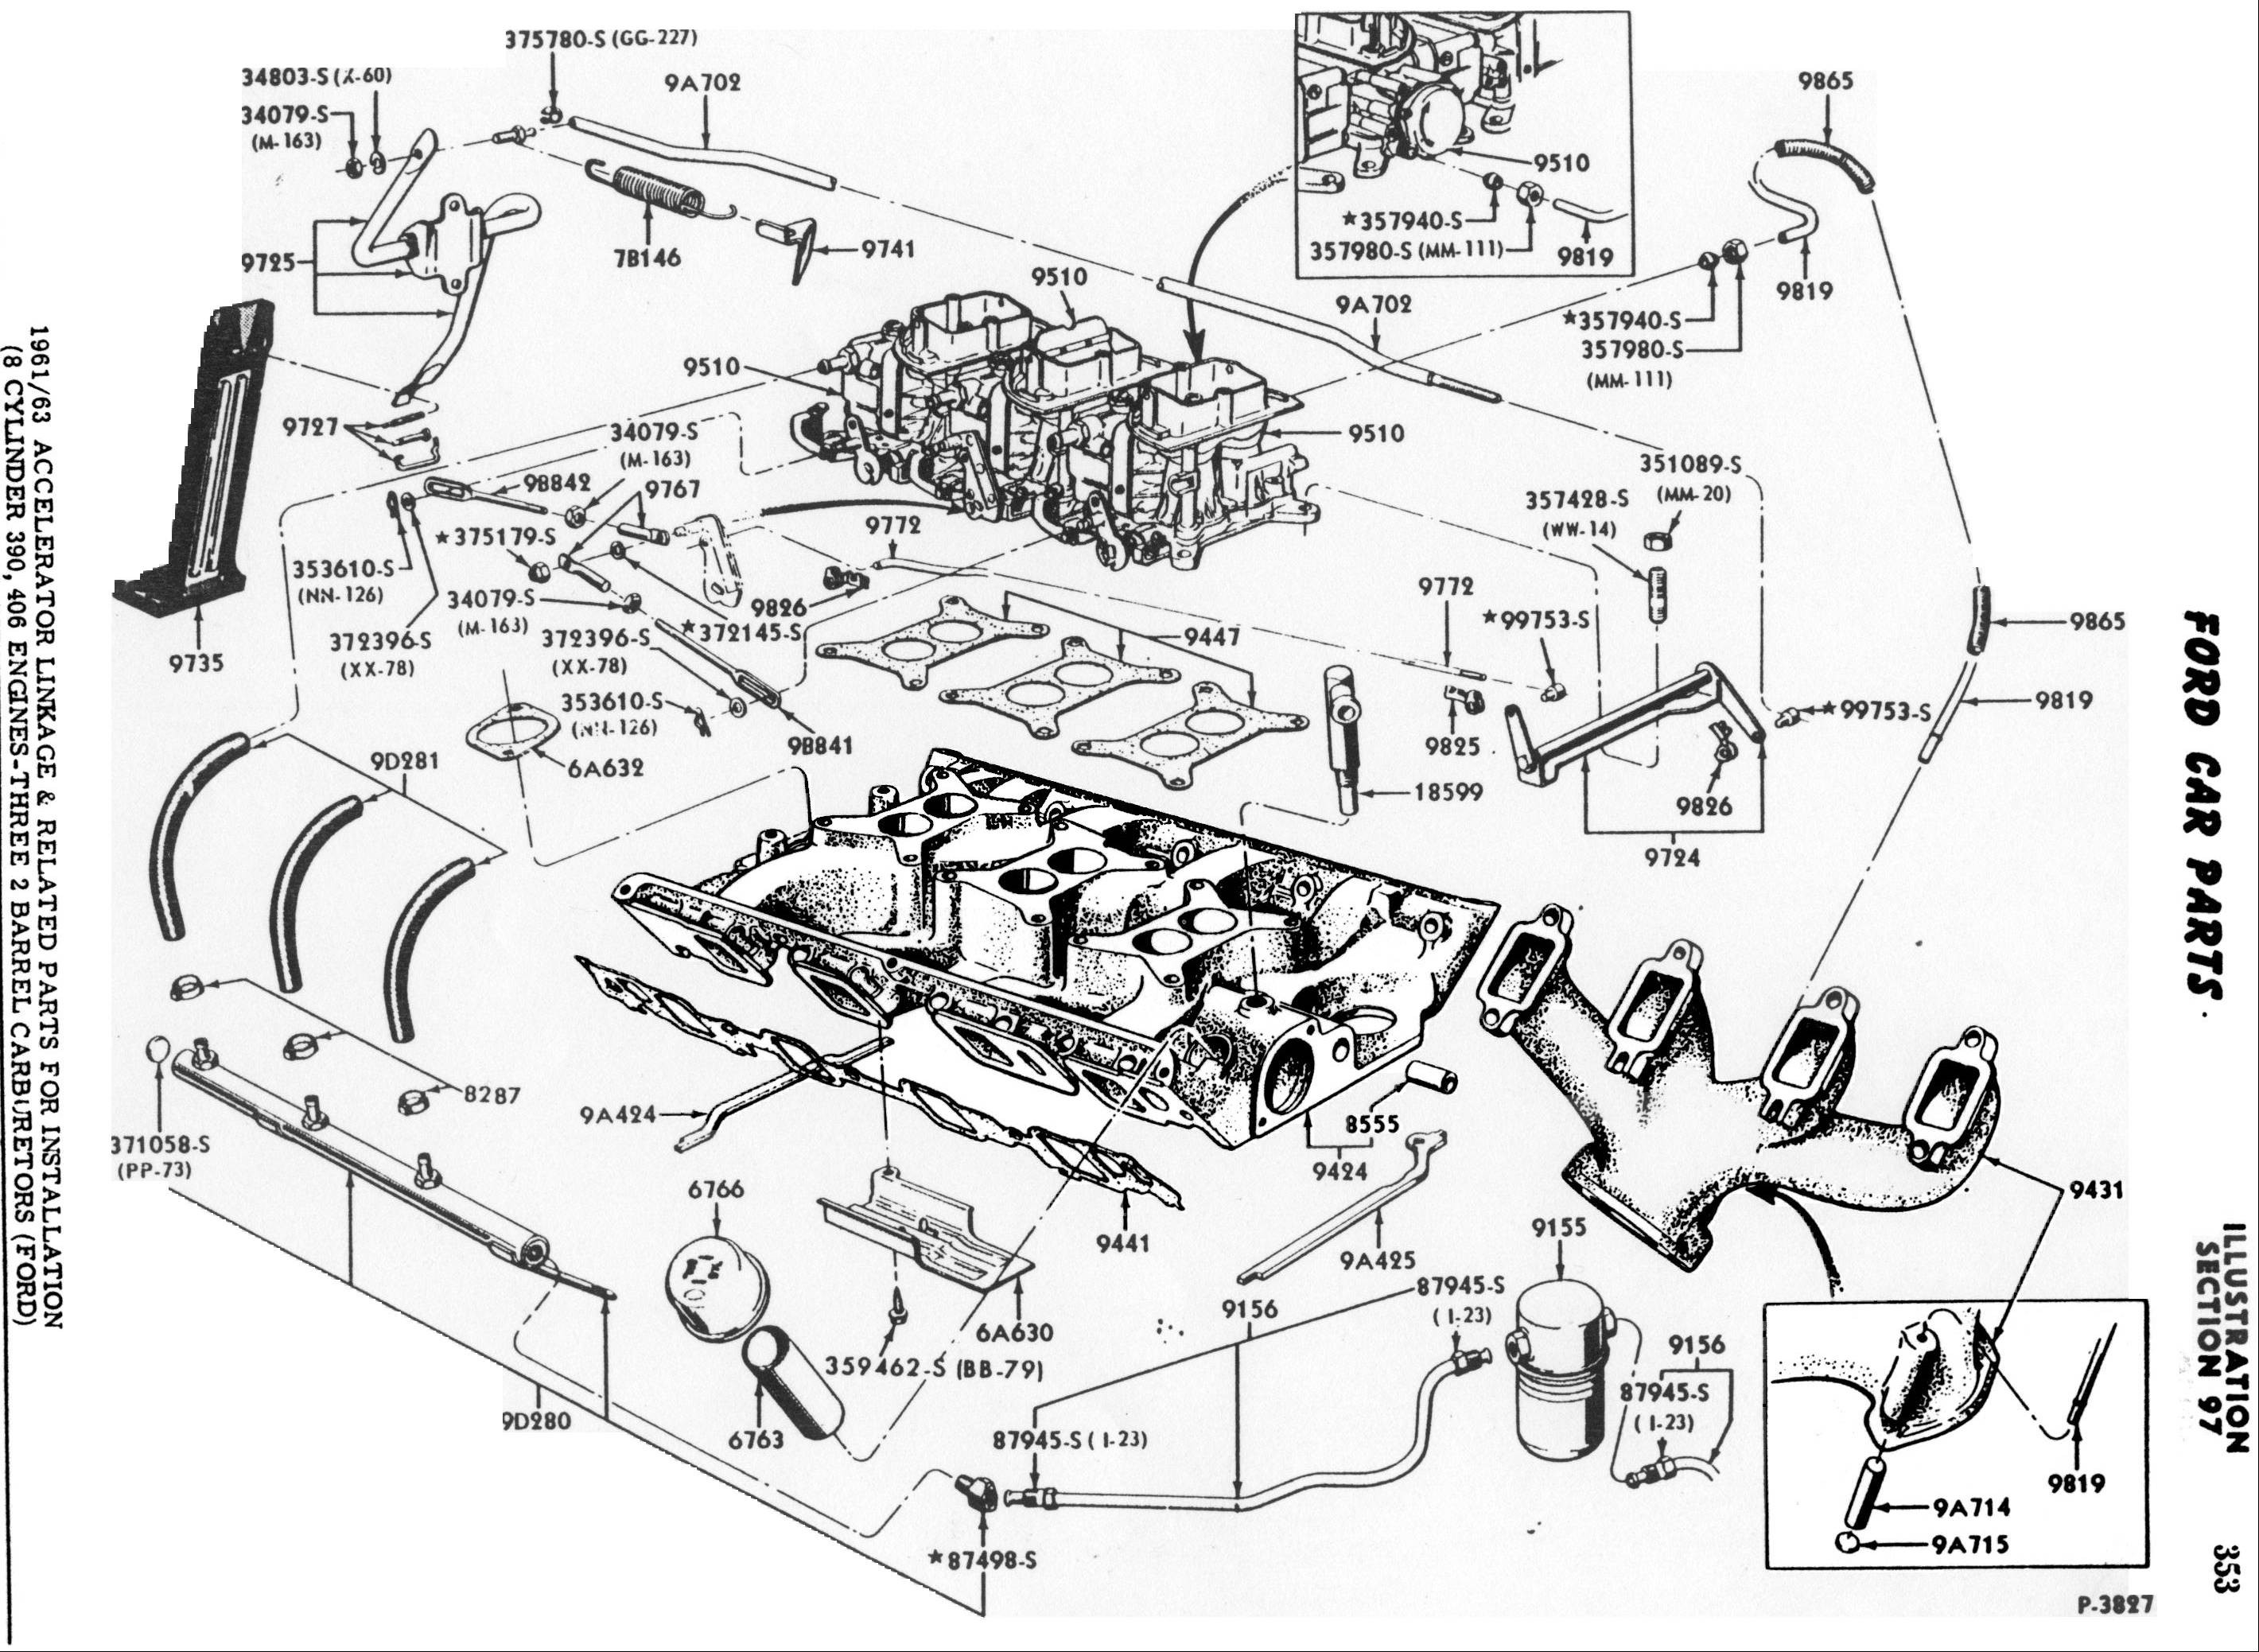 Ford 302 engine diagram 460 ford engine diagram wiring info of ford 302 engine diagram